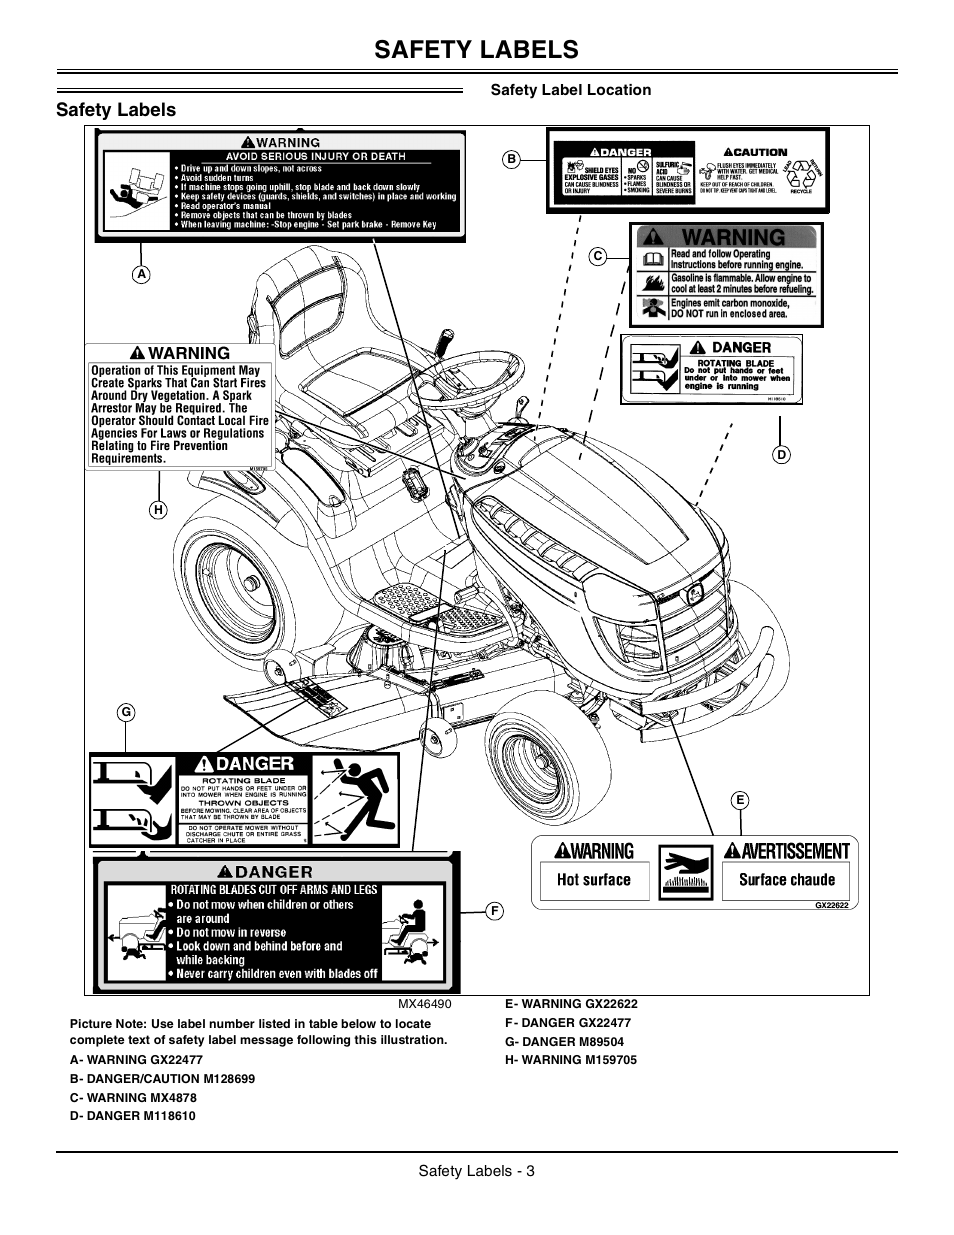 JOHN DEERE D110 MANUAL PDF - Auto Electrical Wiring Diagram on john deere d110 fuel system, john deere d110 fuel tank, john deere d110 transmission, john deere d110 electrical, john deere 110 parts diagram, john deere d110 cover, lawn mower engine wiring diagram, john deere d110 spark plug, john deere d110 specifications, john deere d110 kill switch, john deere d110 oil filter, john deere mower deck belt diagram, john deere d110 battery, john deere lawn mower diagrams, john deere 345 parts diagram, john deere gator wiring-diagram, john deere d110 fuse, john deere d110 tractor, john deere d110 parts, john deere d110 carburetor,